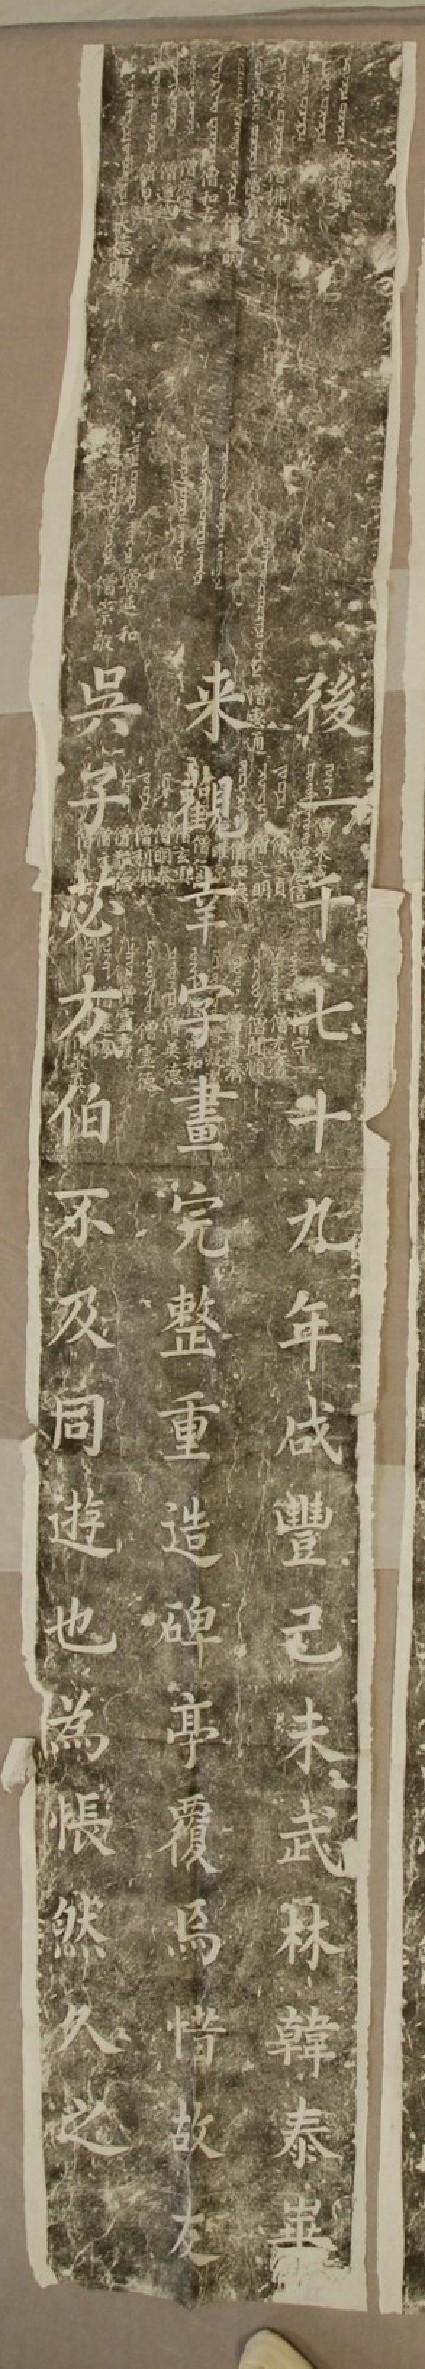 Copy of the Qing comment on Tang stele The Nestorian Stele